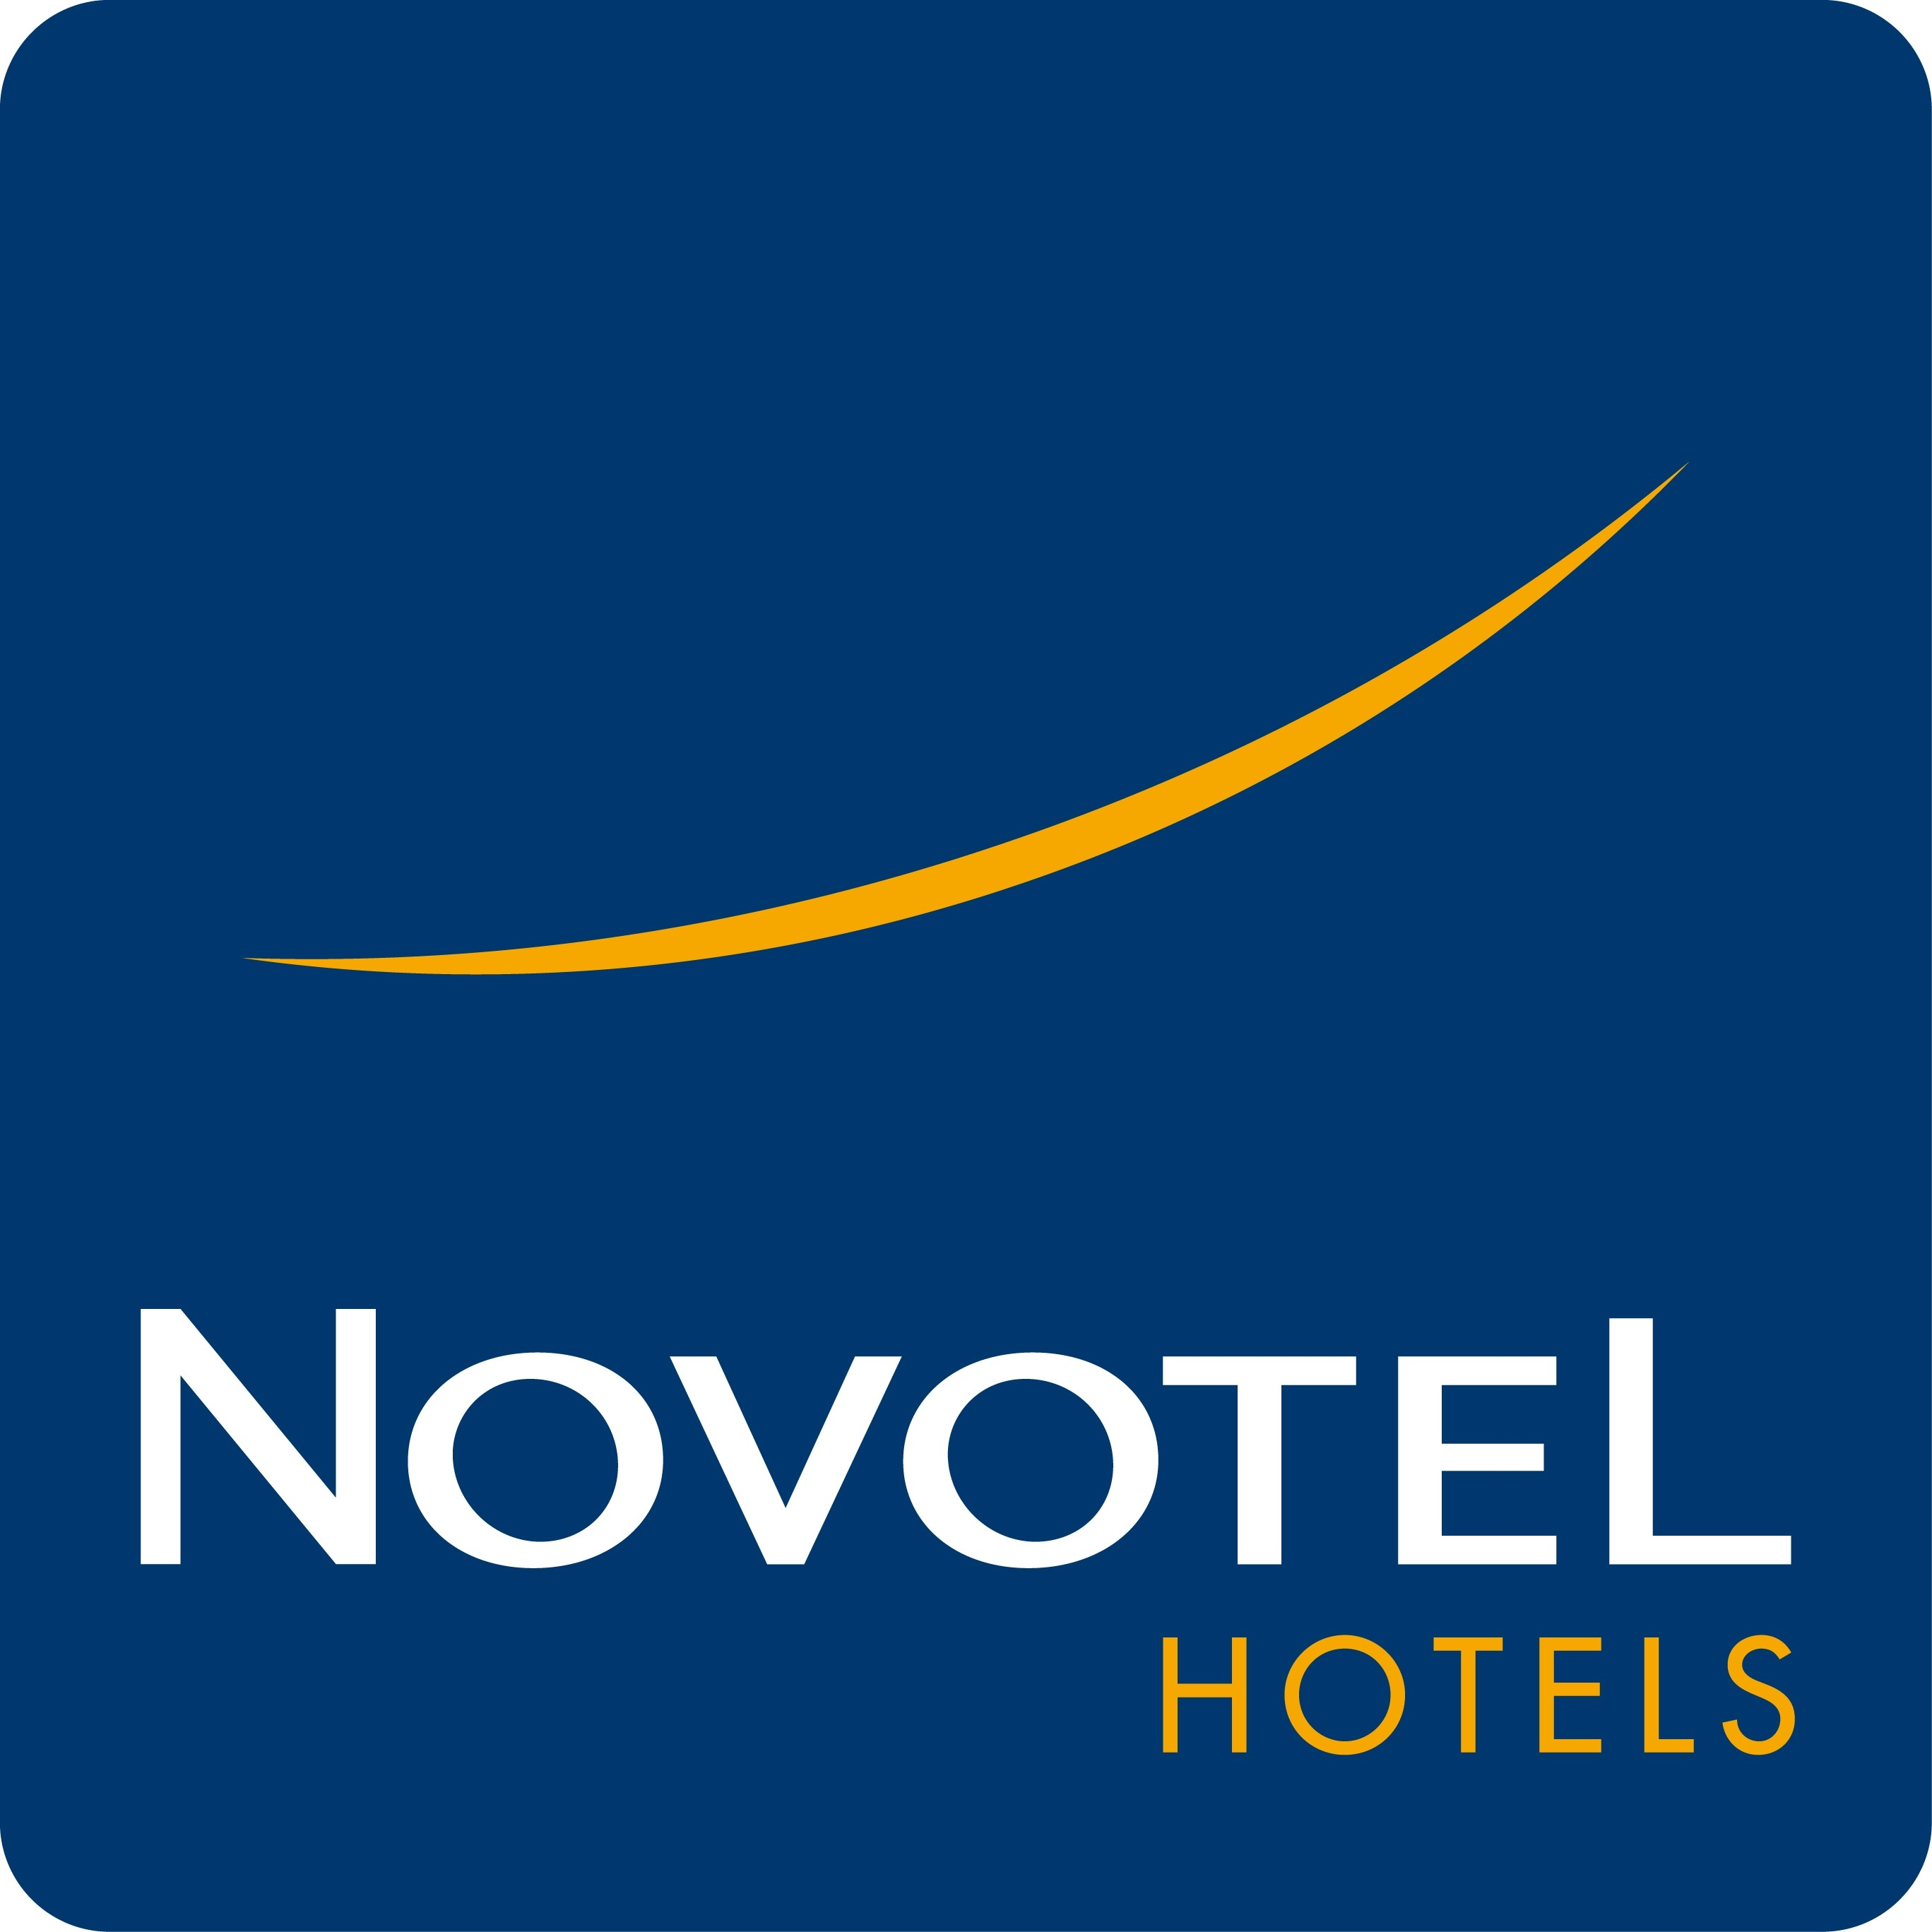 Novotel hotels in india, HotelNovotel, Novotel group of hotels, Luxury hotels in india, Novotel Hotel services